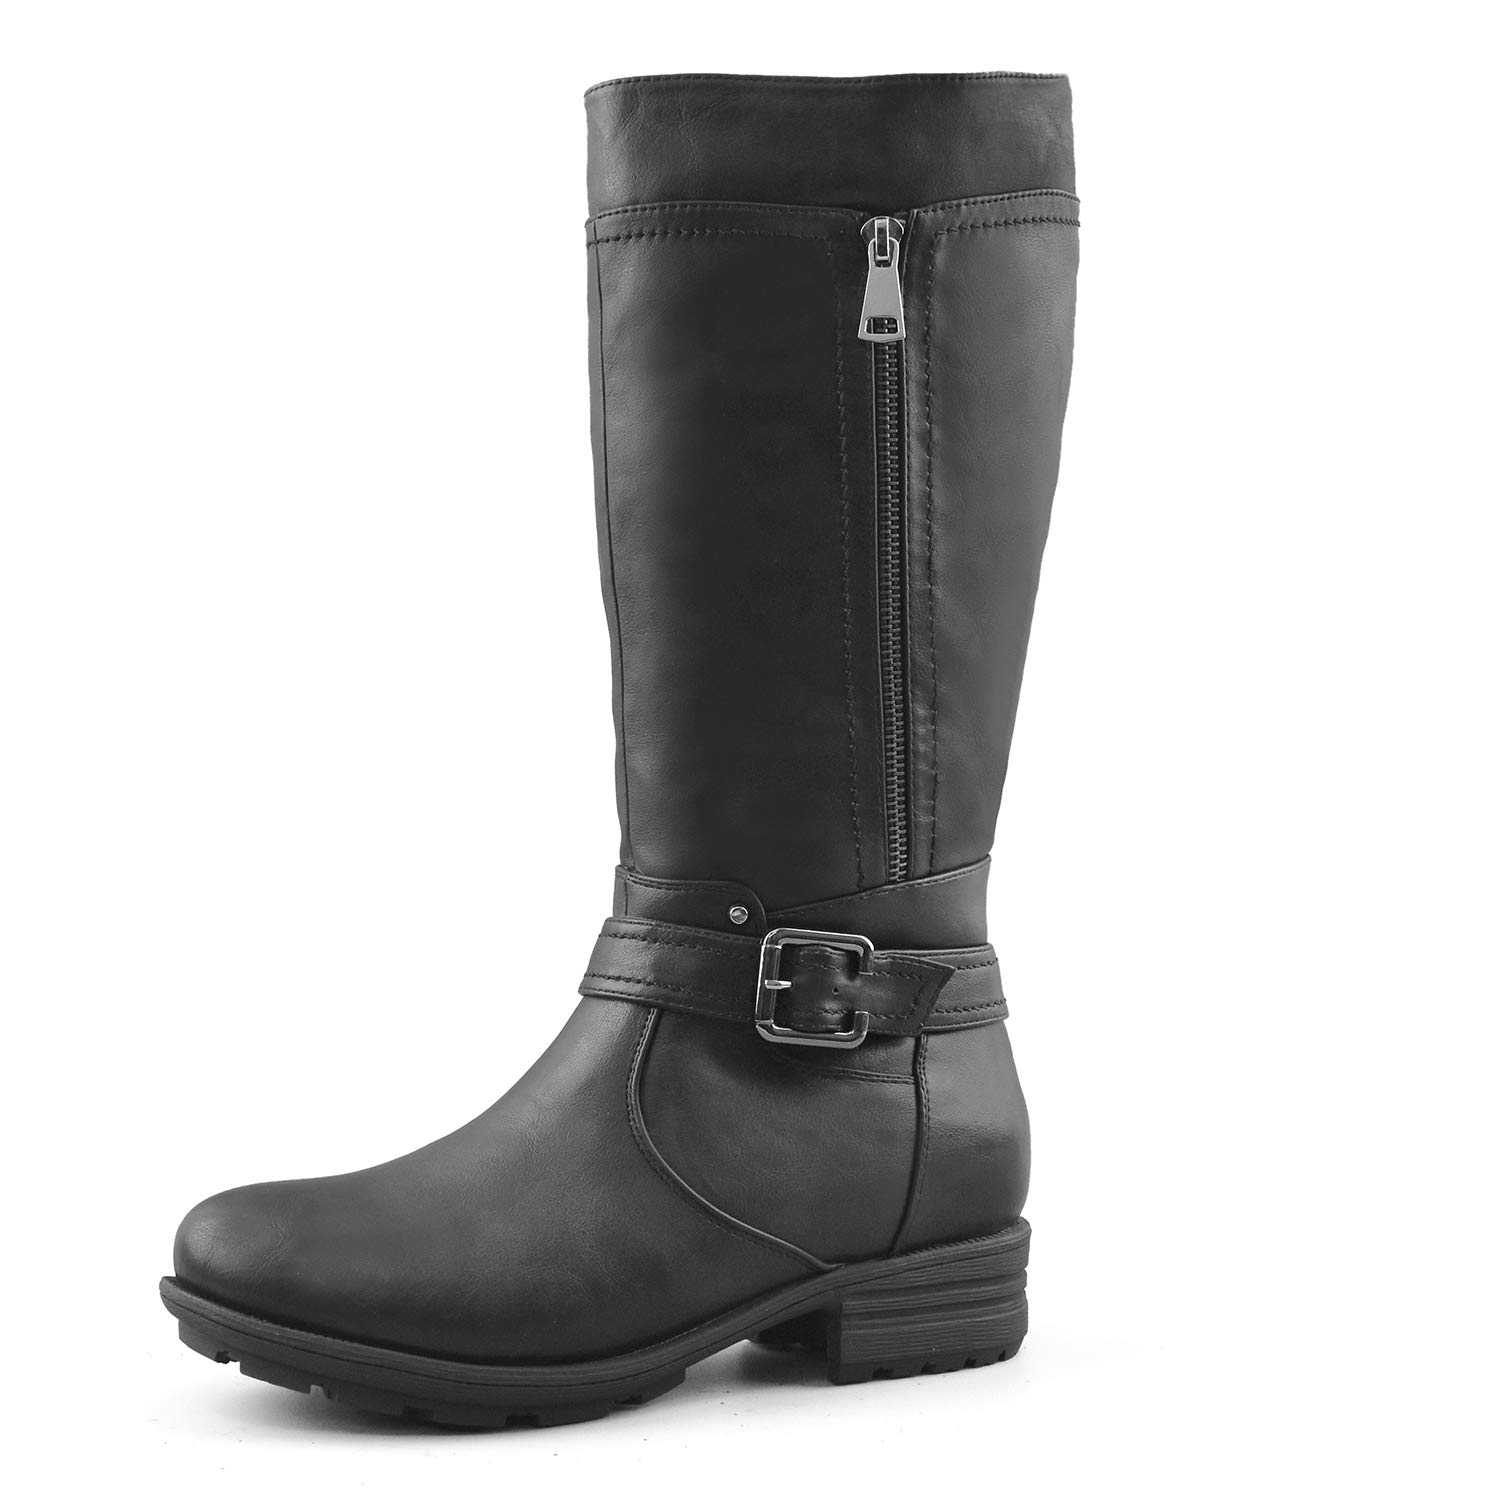 Comfy Moda Women's Wool-Lined Cold-Weather Boots Meggie